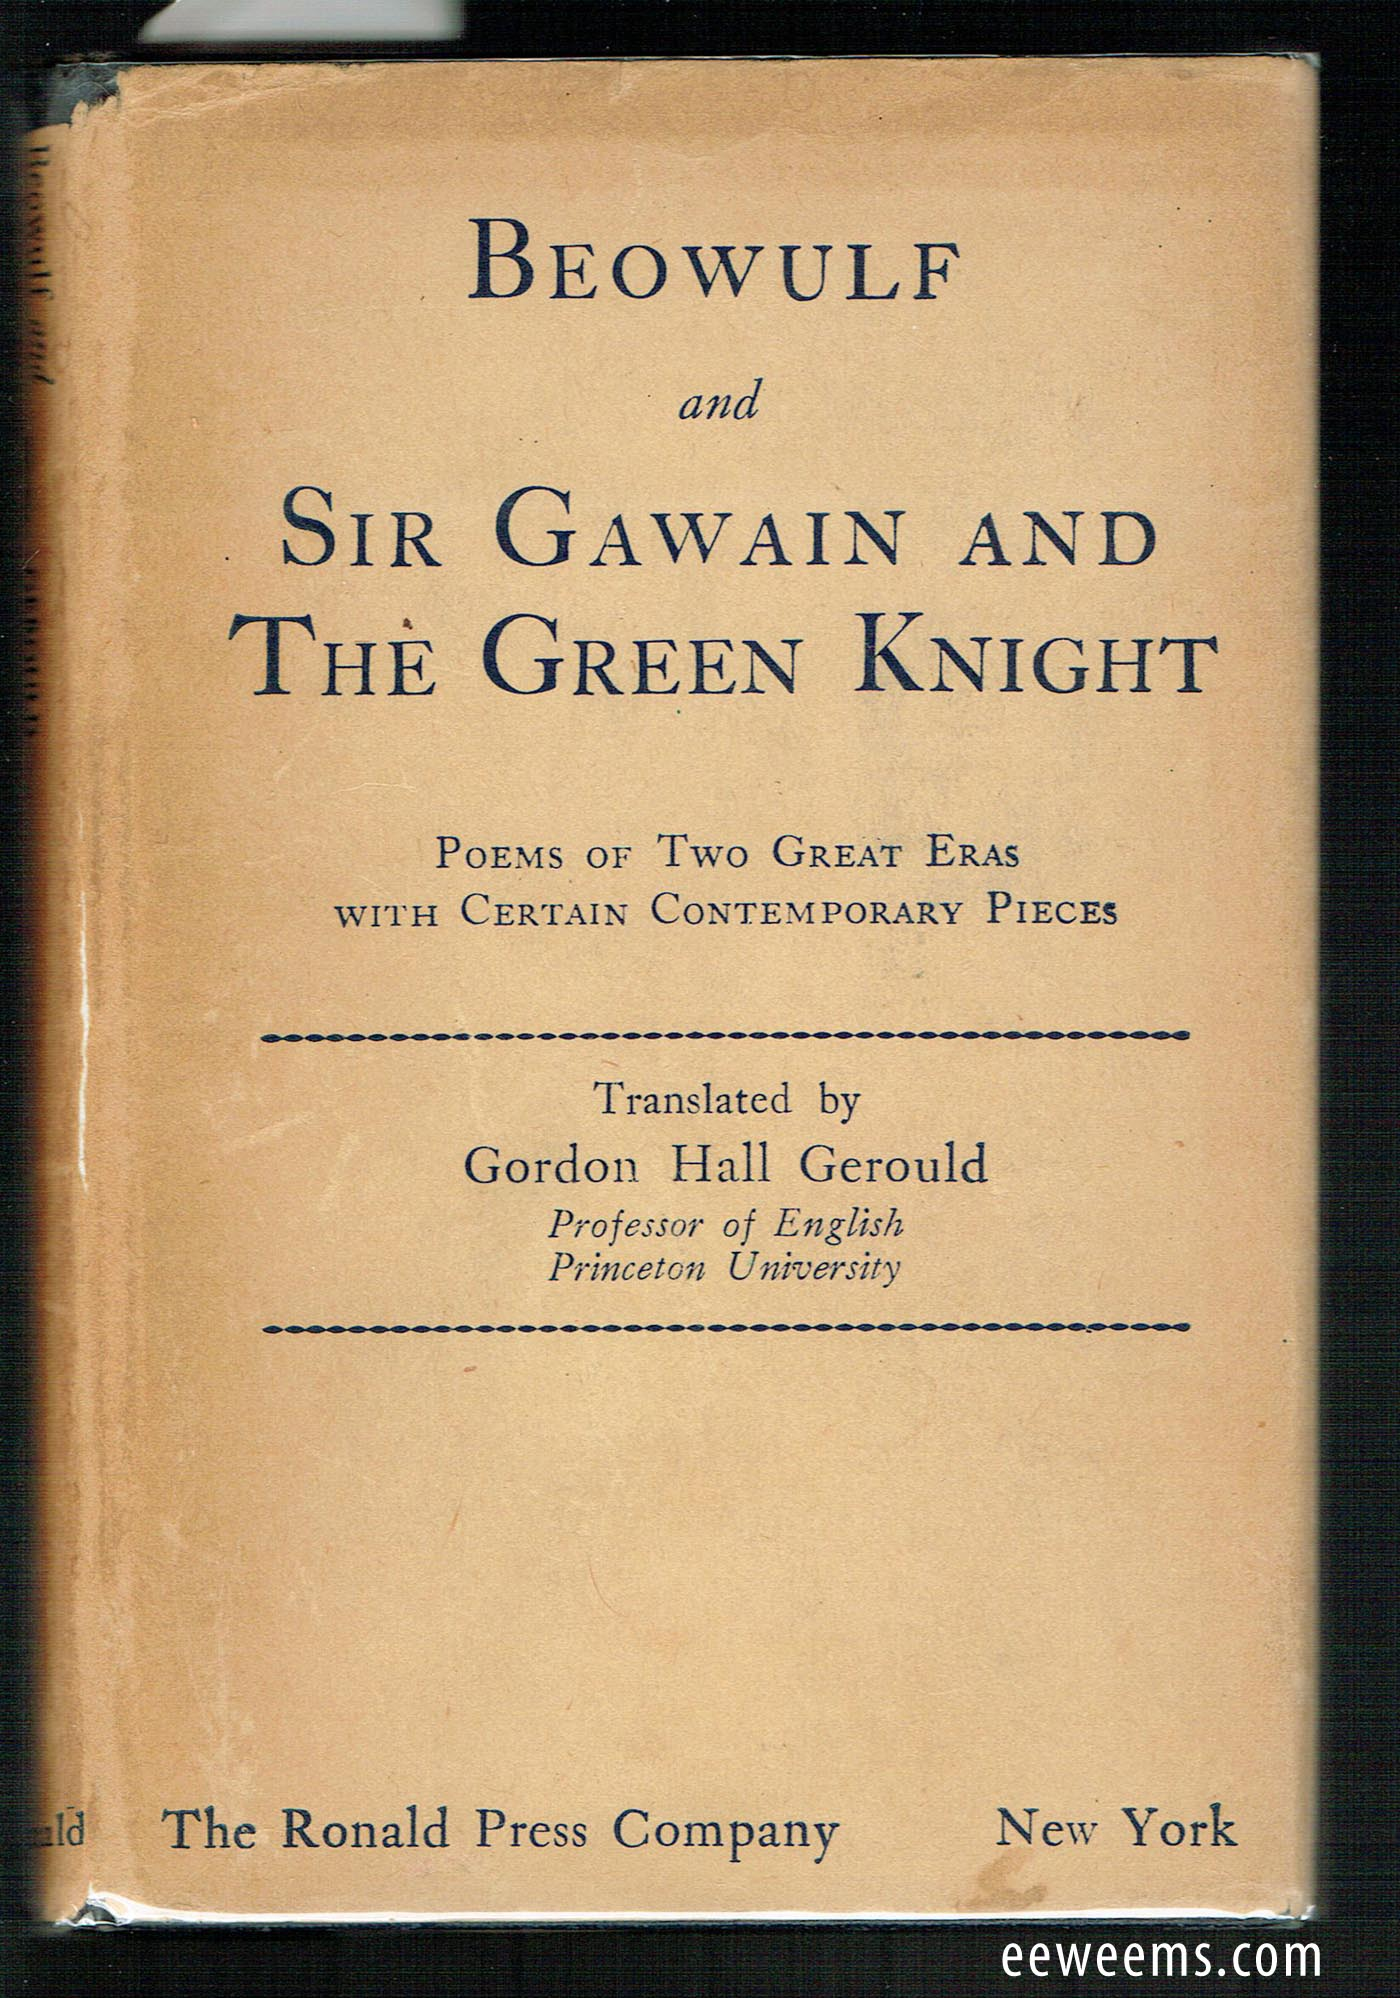 the christianity aspects in the poem sir gawain and the green knight Sir gawain and the green knight, pearl, and sir orfeo are sir orfeo, the last poem in the way the author understands some aspects of christianity.